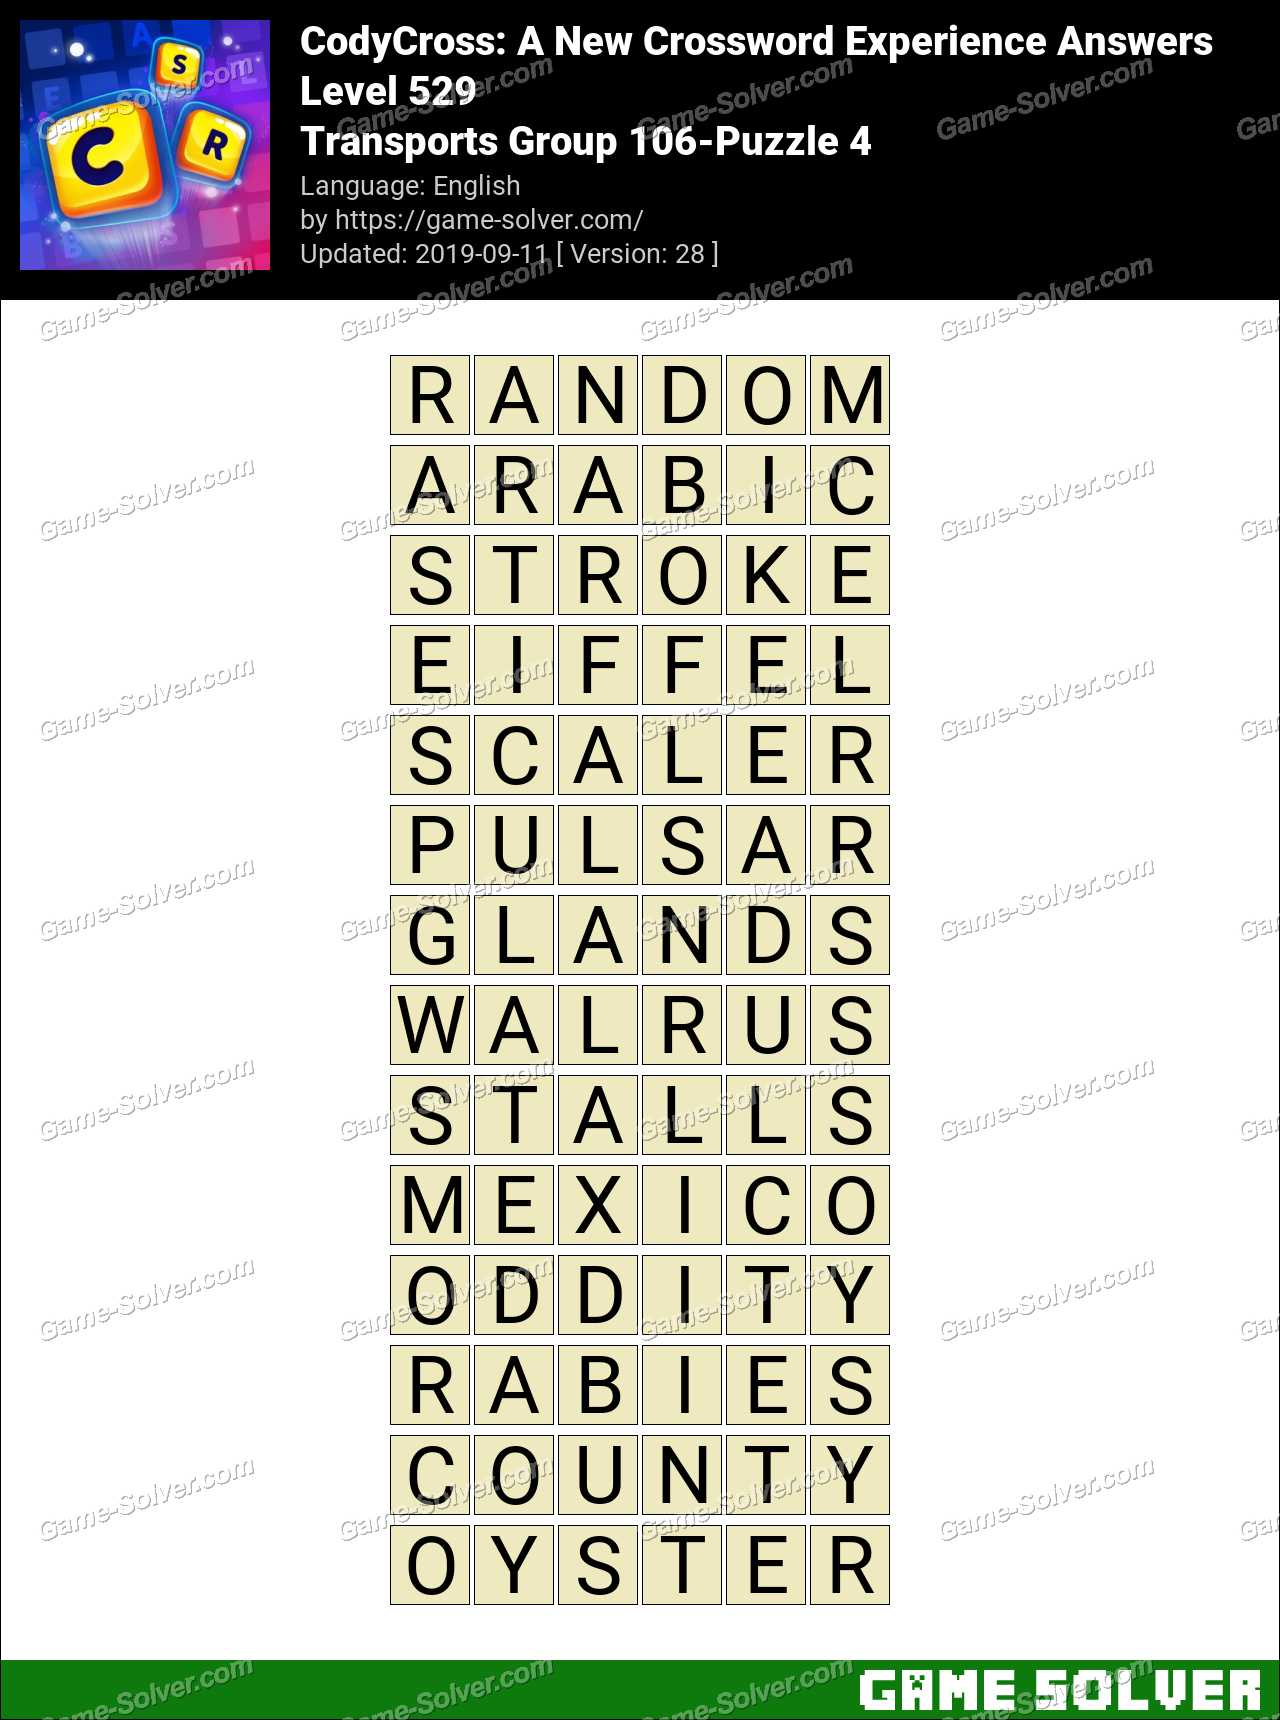 CodyCross Transports Group 106-Puzzle 4 Answers